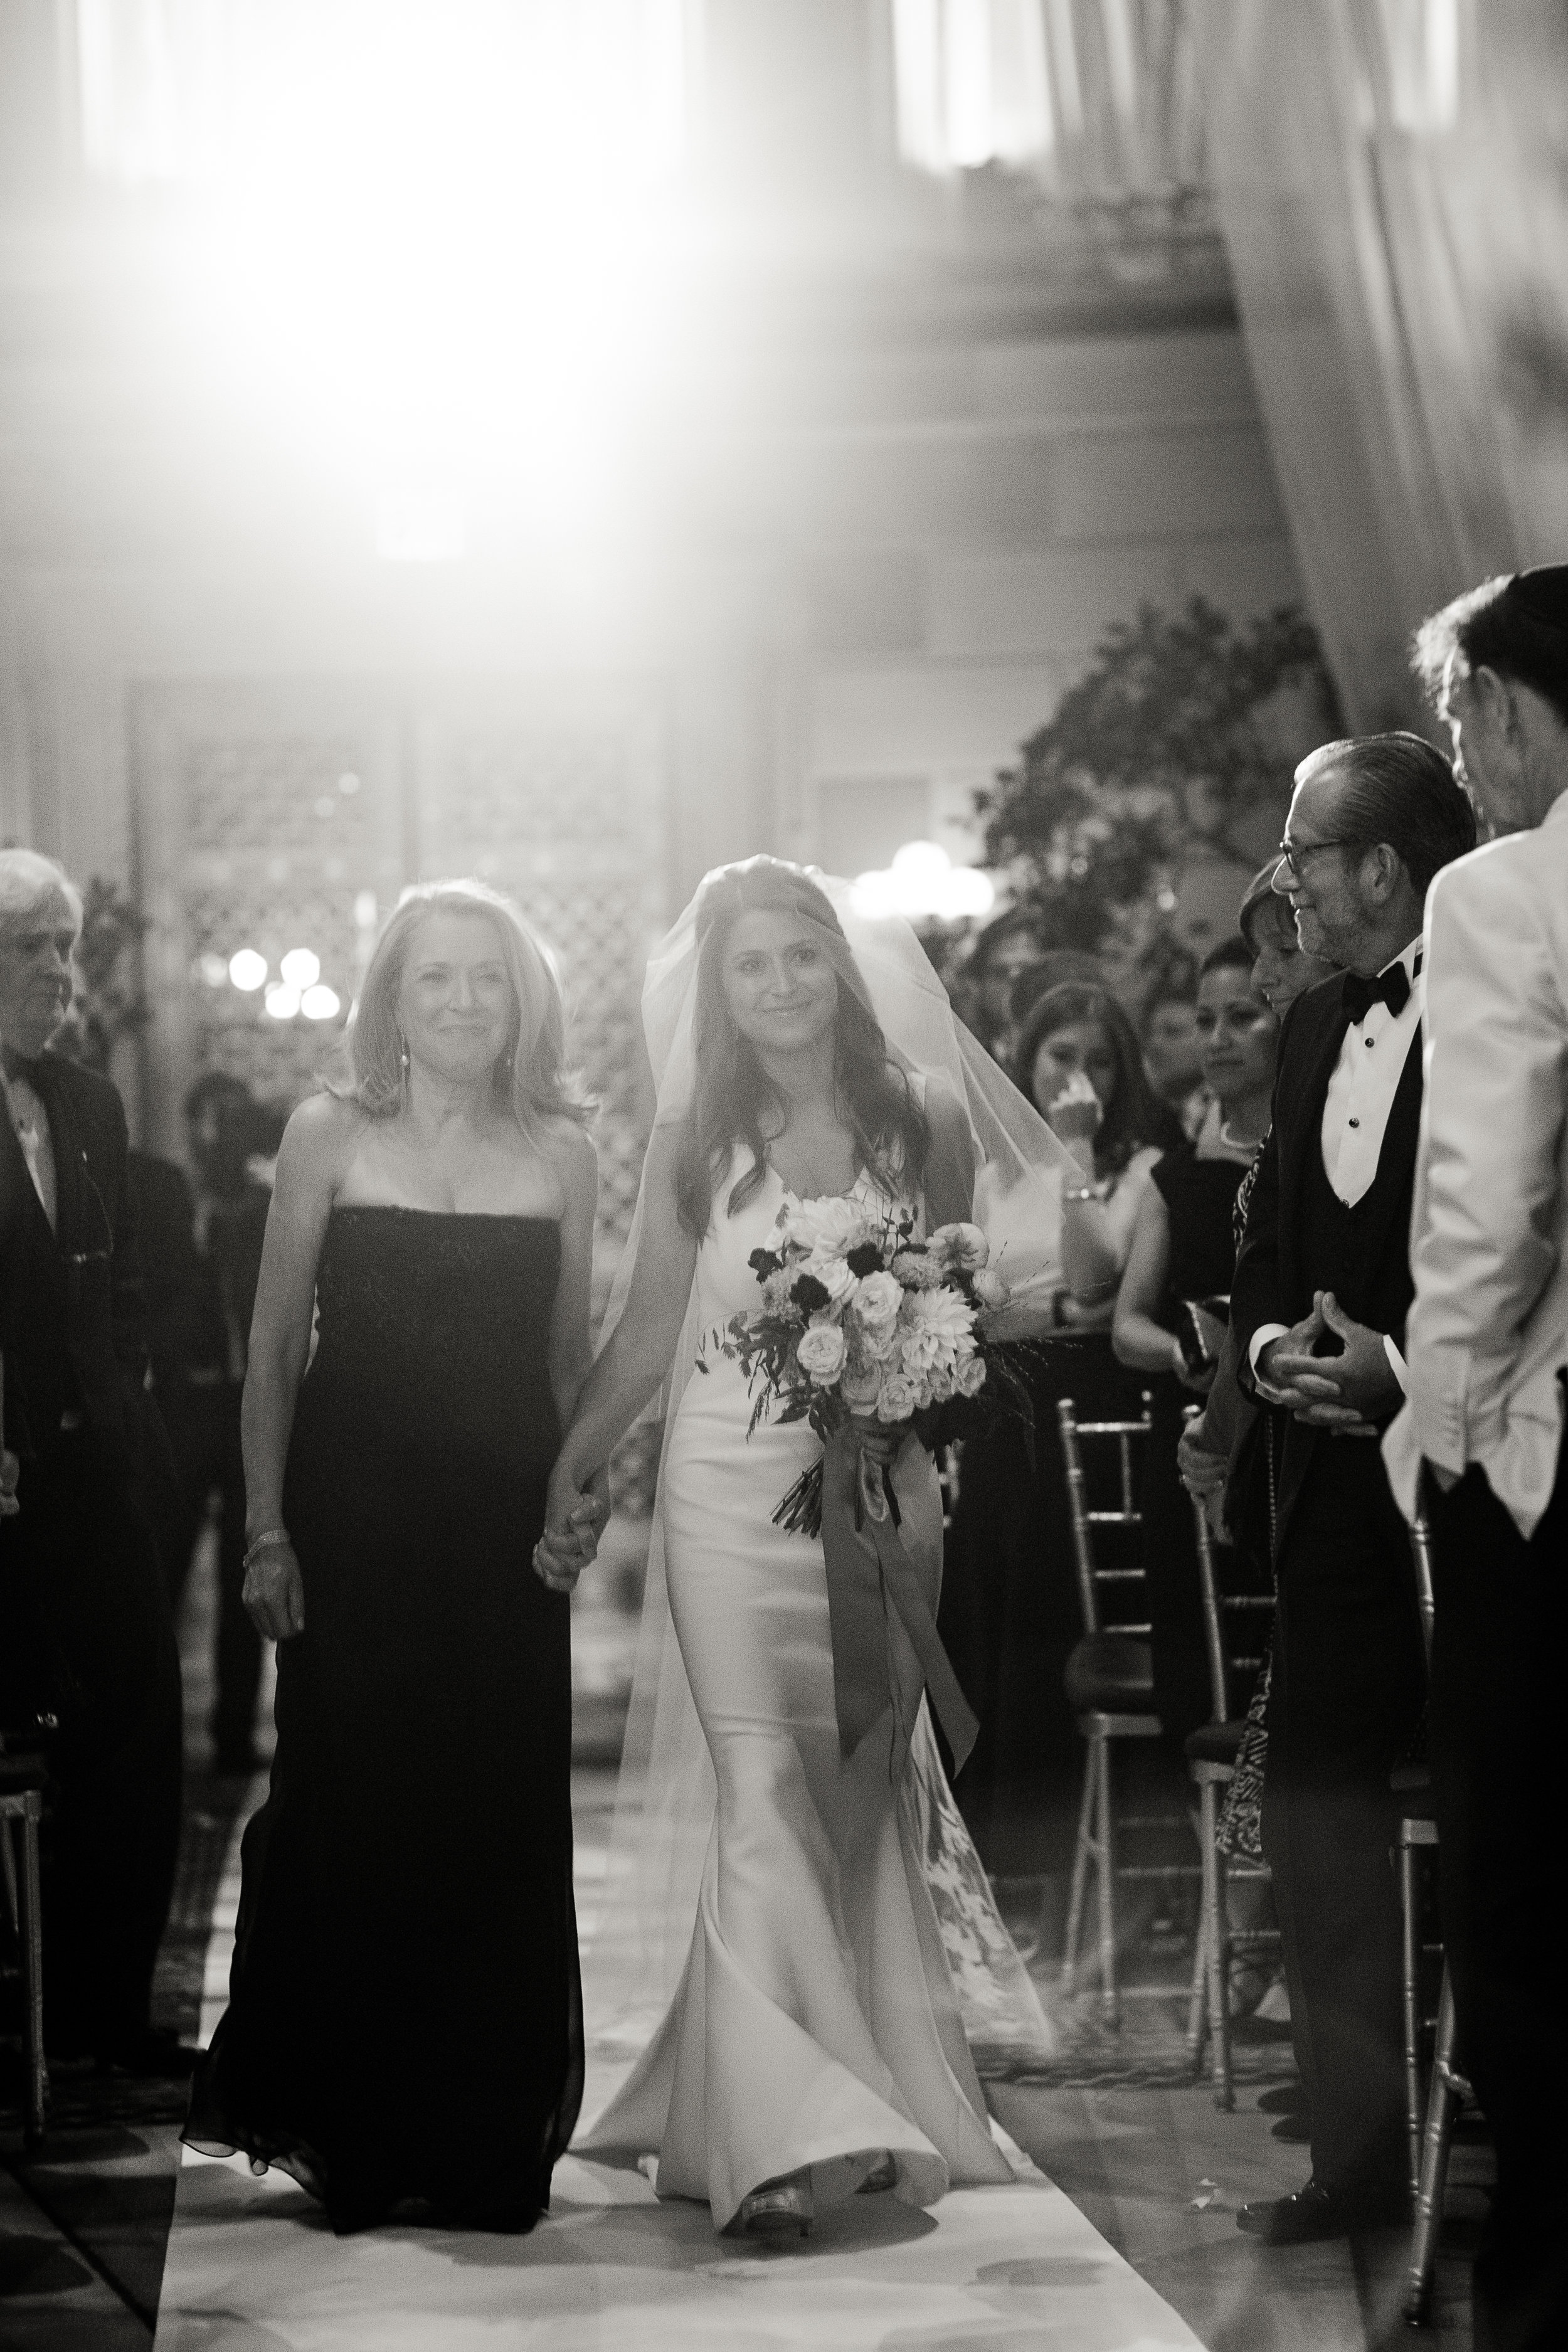 Alix's mother walking her down the aisle during her ceremony.